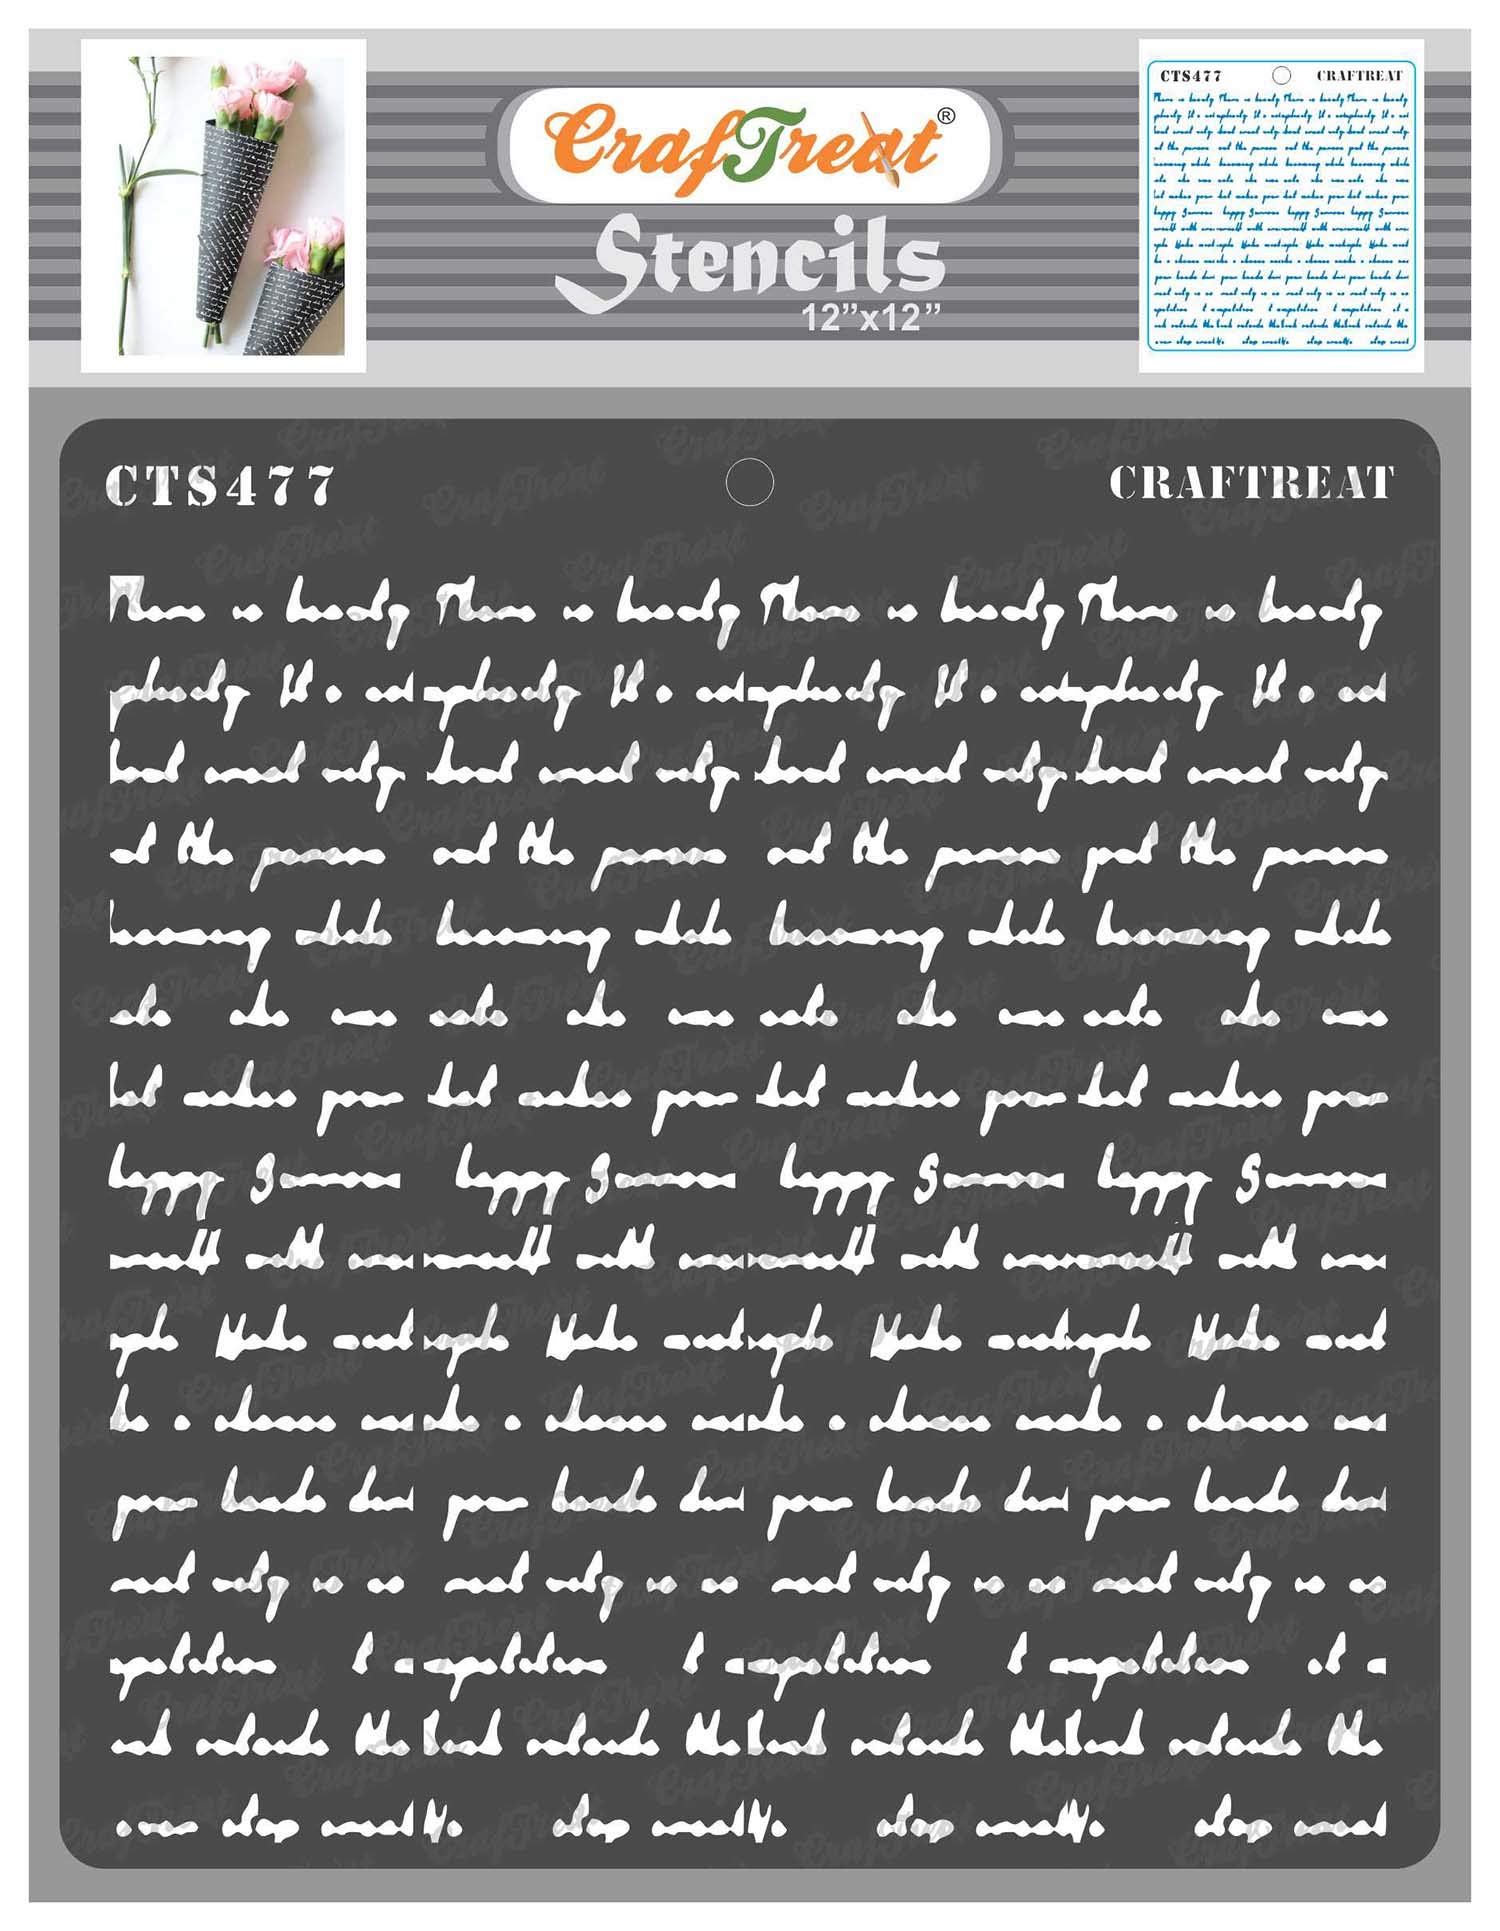 CrafTreat Crafting Script Stencils for Painting on Wood, Wall, Tile, Canvas, Paper and Floor - Script Stencil - 12x12 Inches - Reusable DIY Art and Craft Stencils - Script Letter Stencils